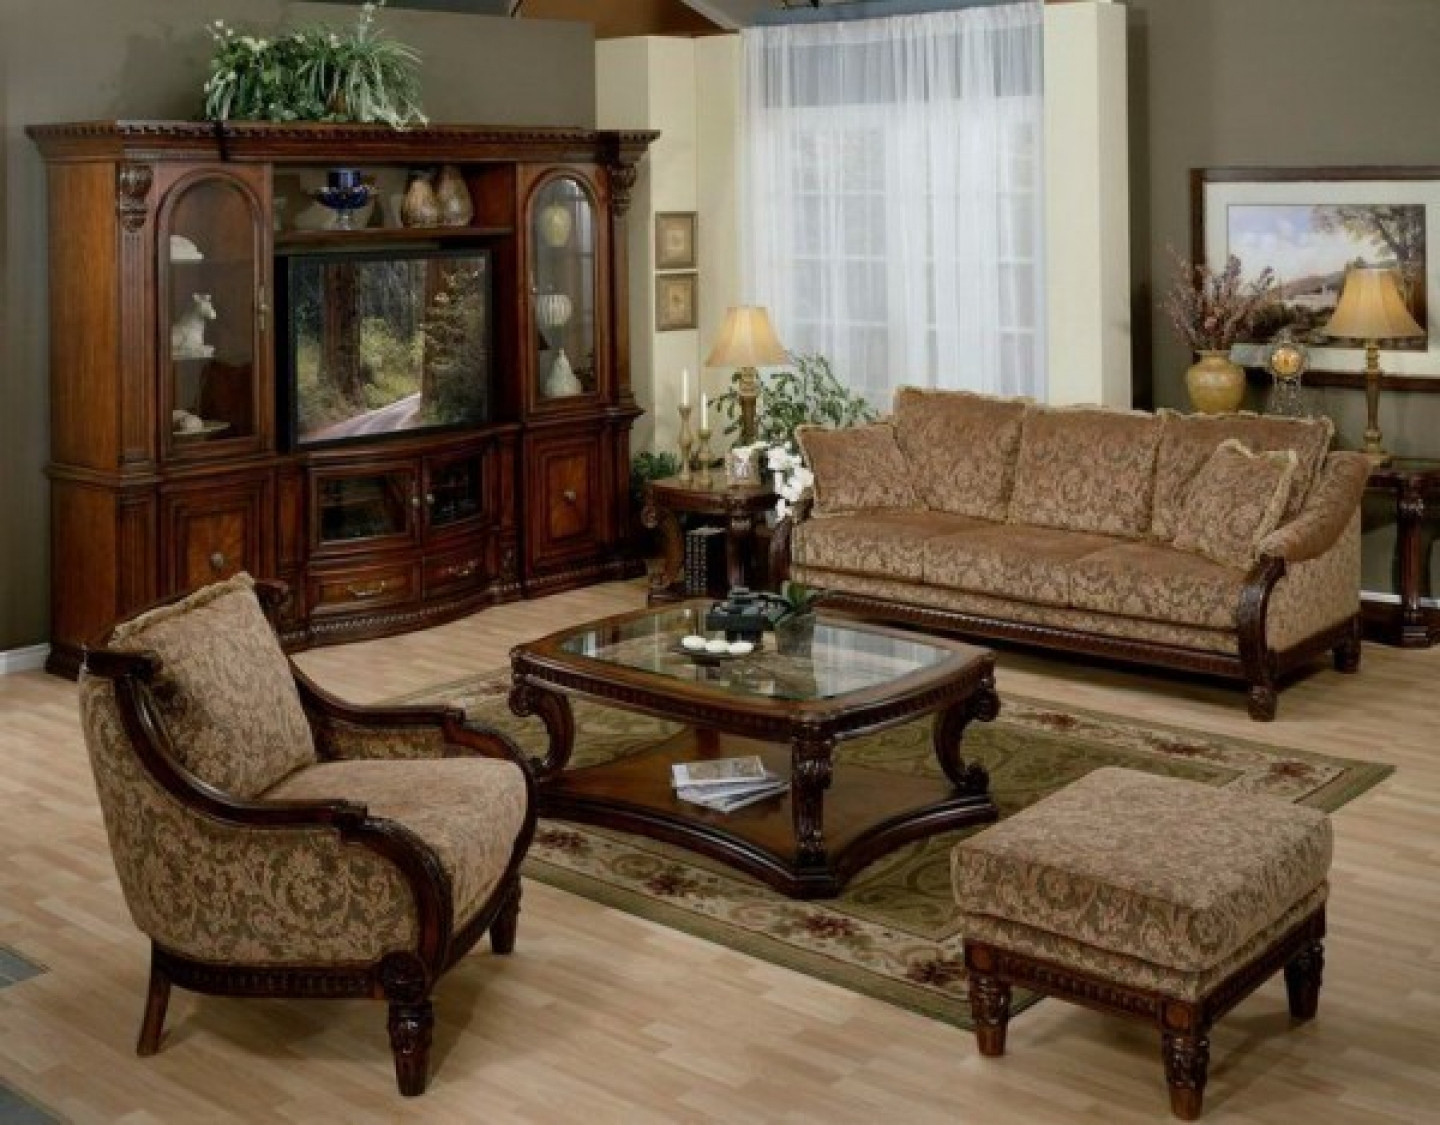 Modular Traditional Sitting Room Ideas - Arelisapril intended for Traditional Living Room Ideas